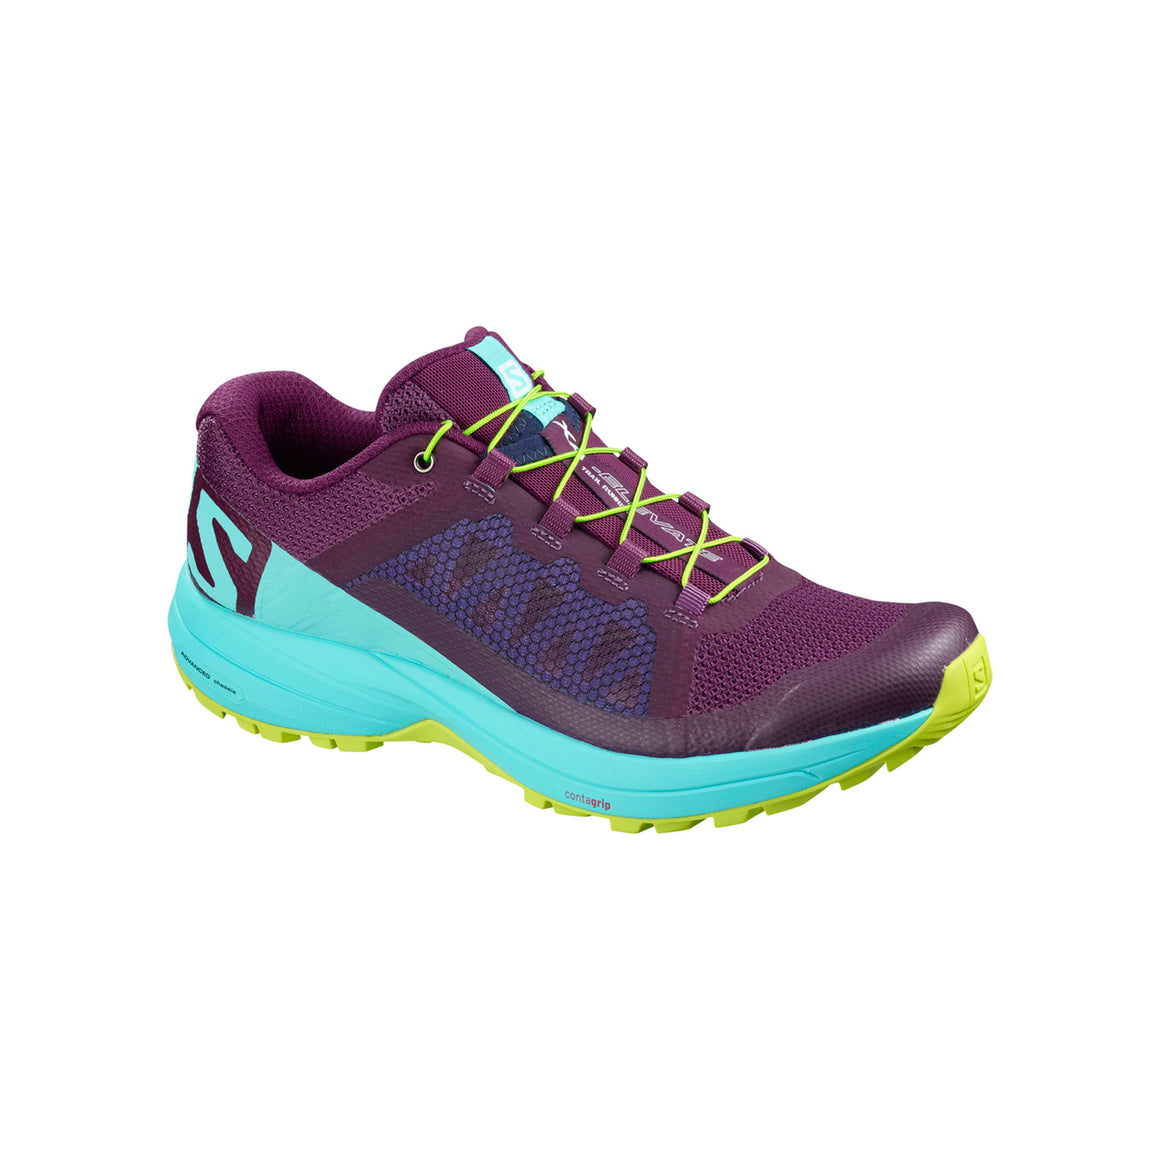 Salomon XA Elevate - Women's